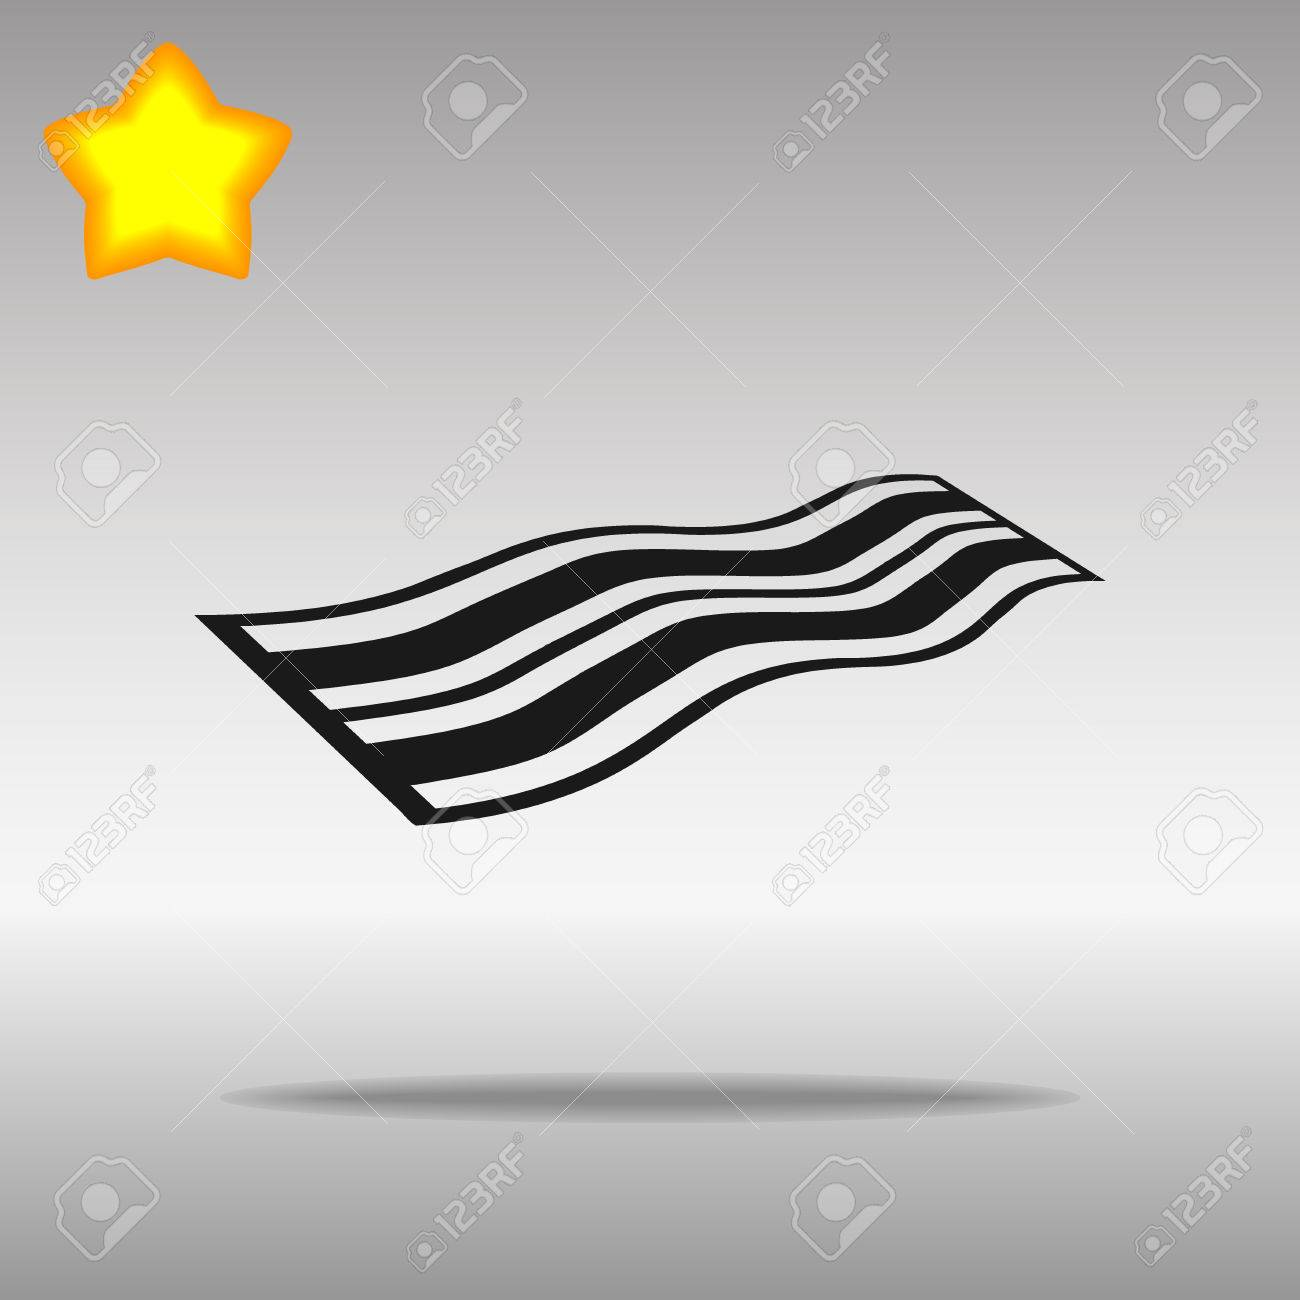 black Towel Icon button logo symbol concept high quality on the gray background - 82176423